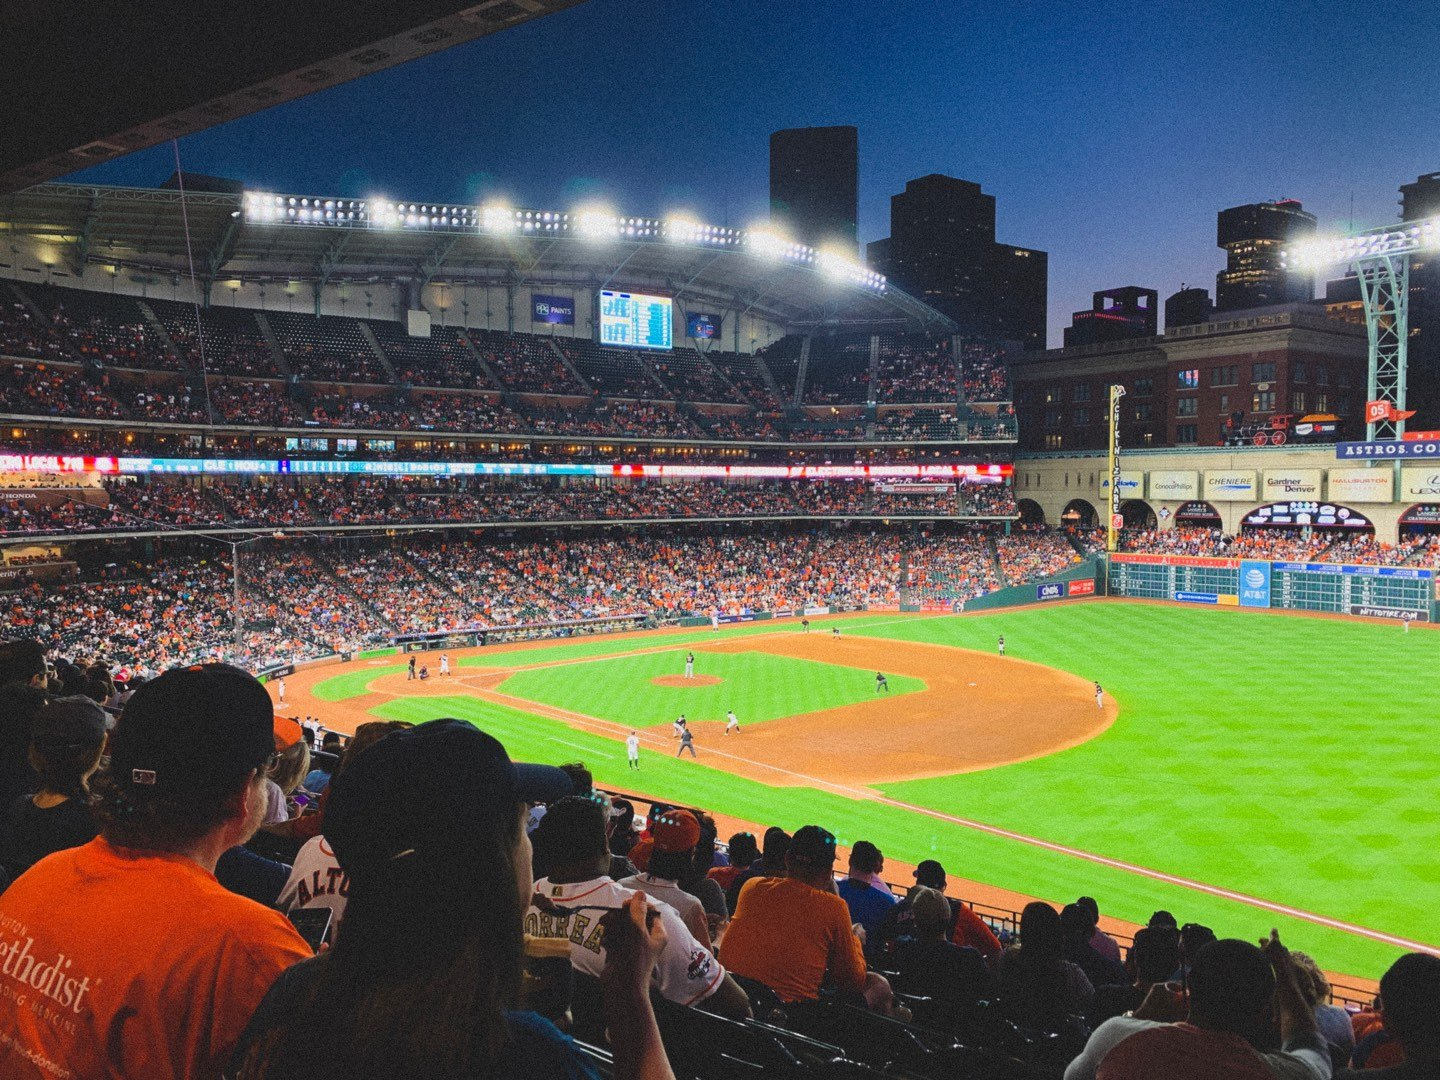 Minute Maid Park Section 230 Row 10 Seat 14